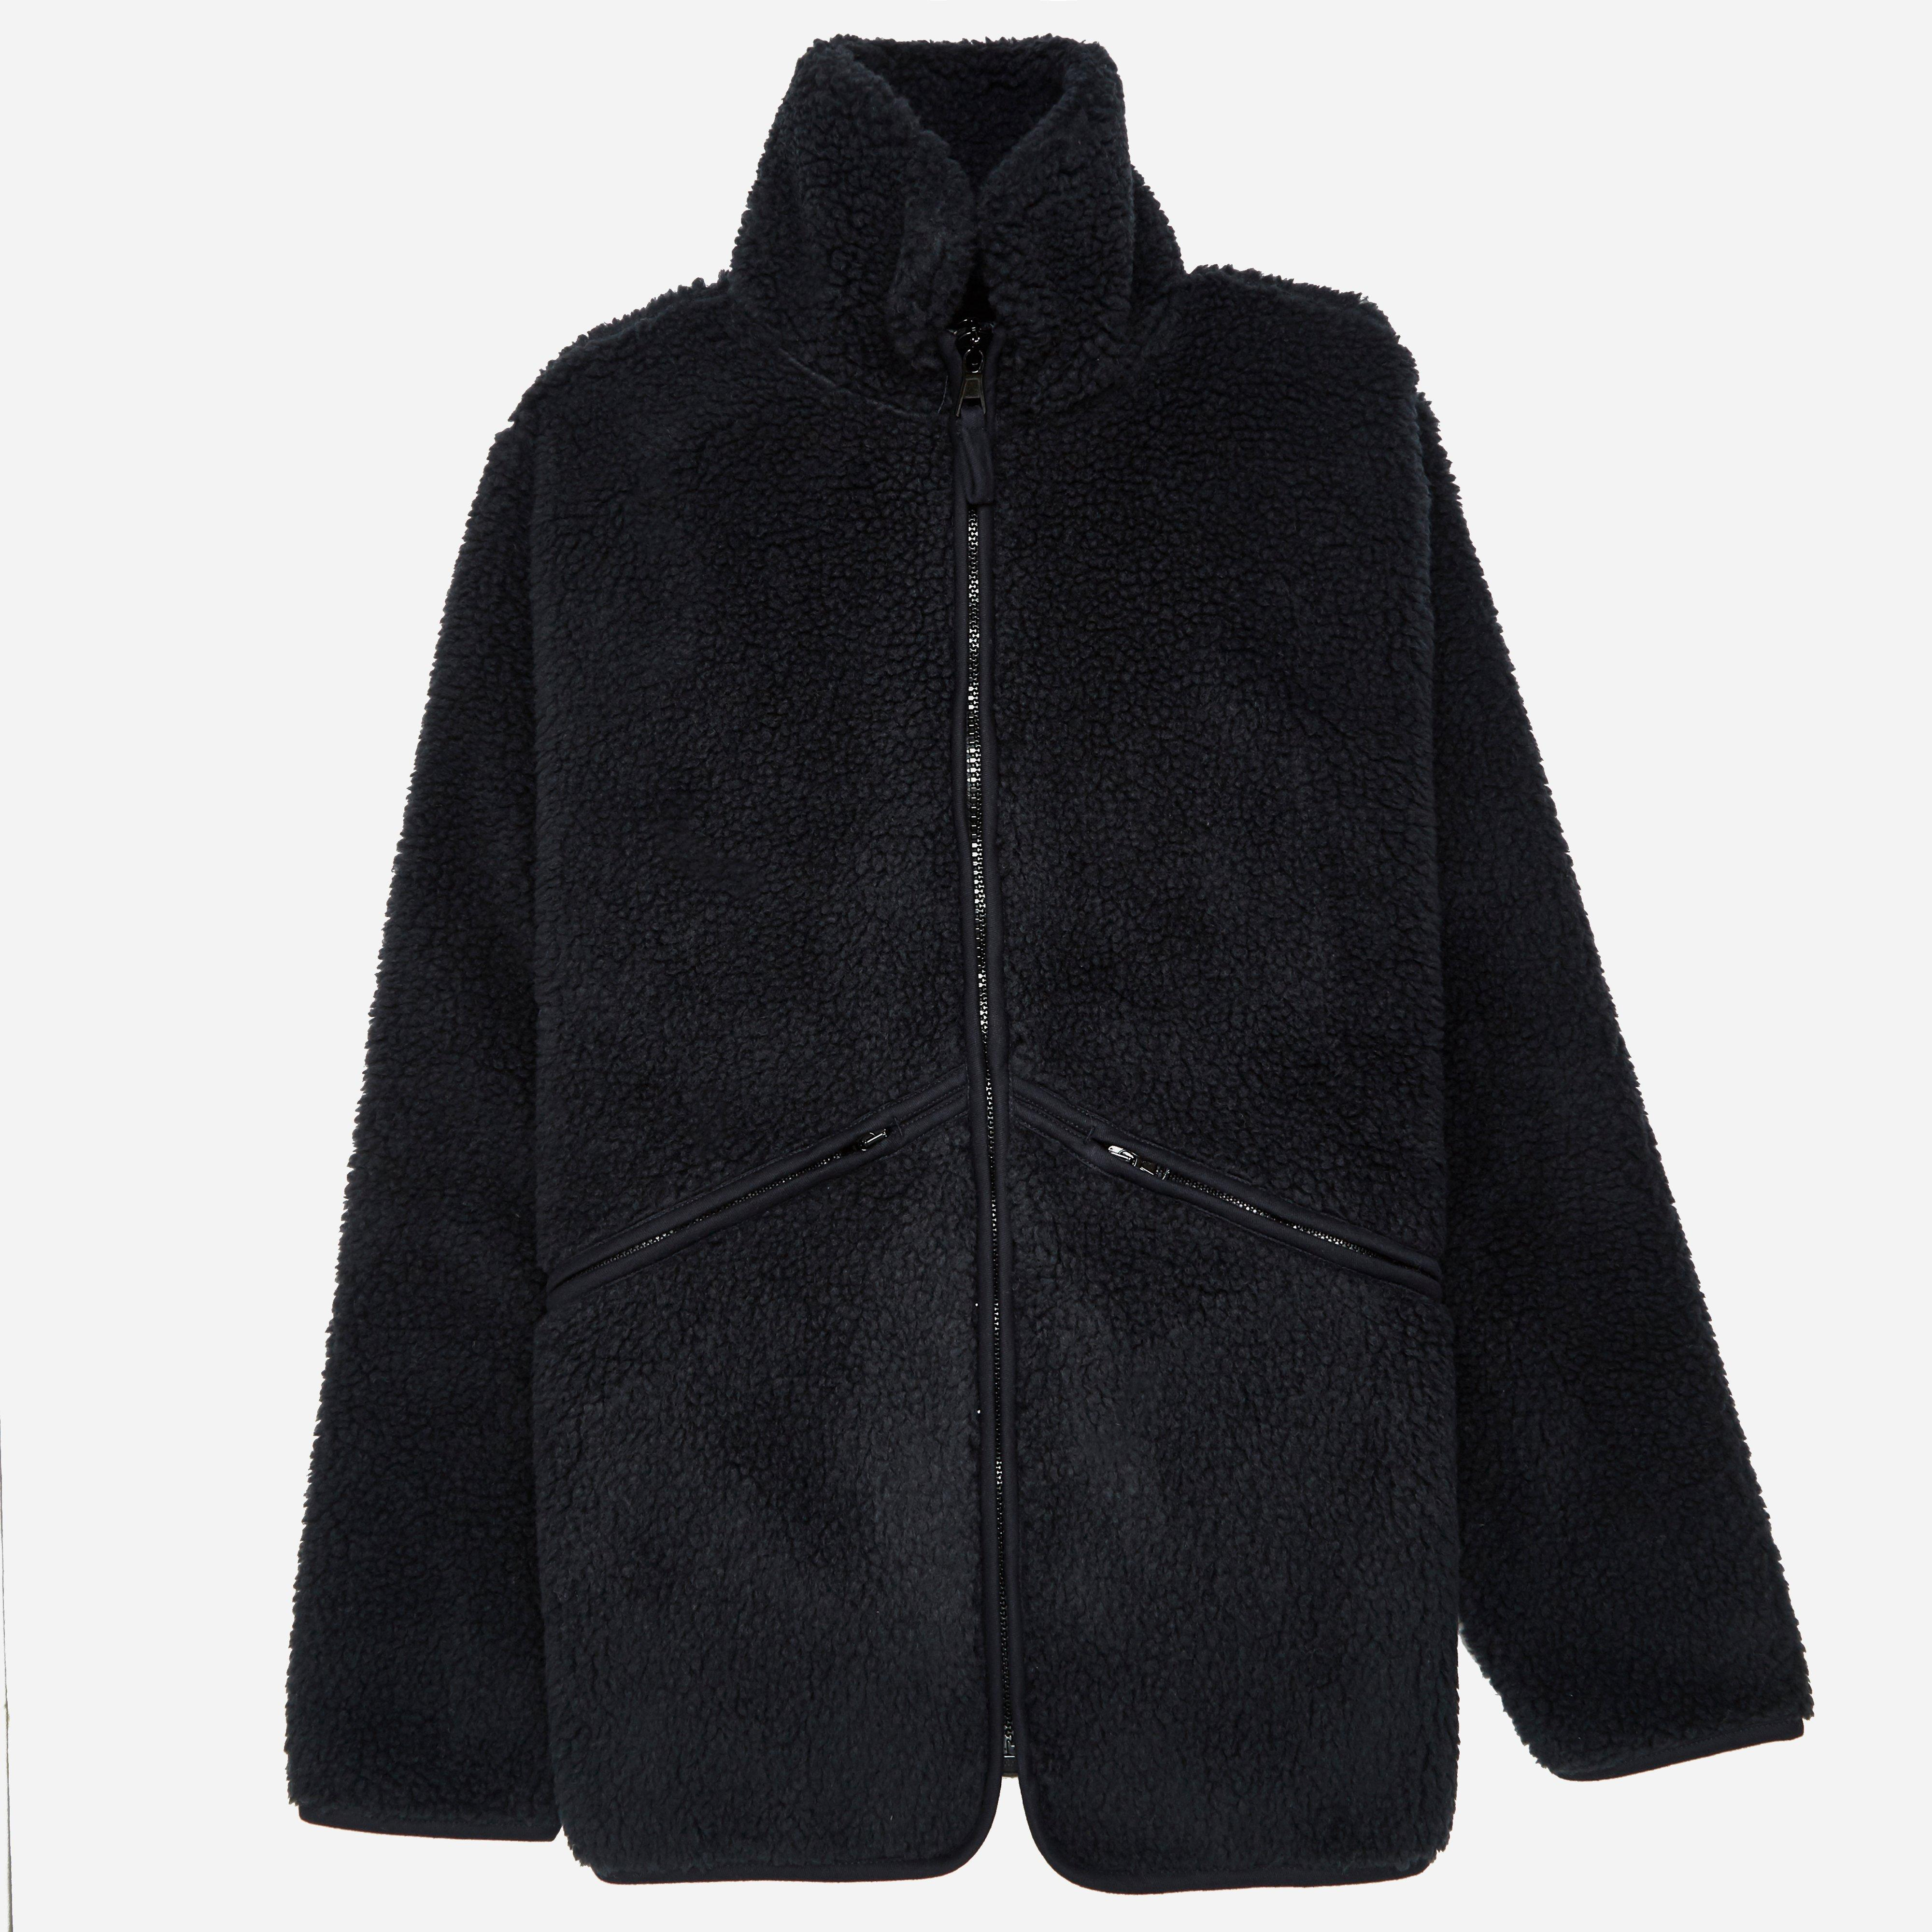 Albam Fleece Zip Jacket